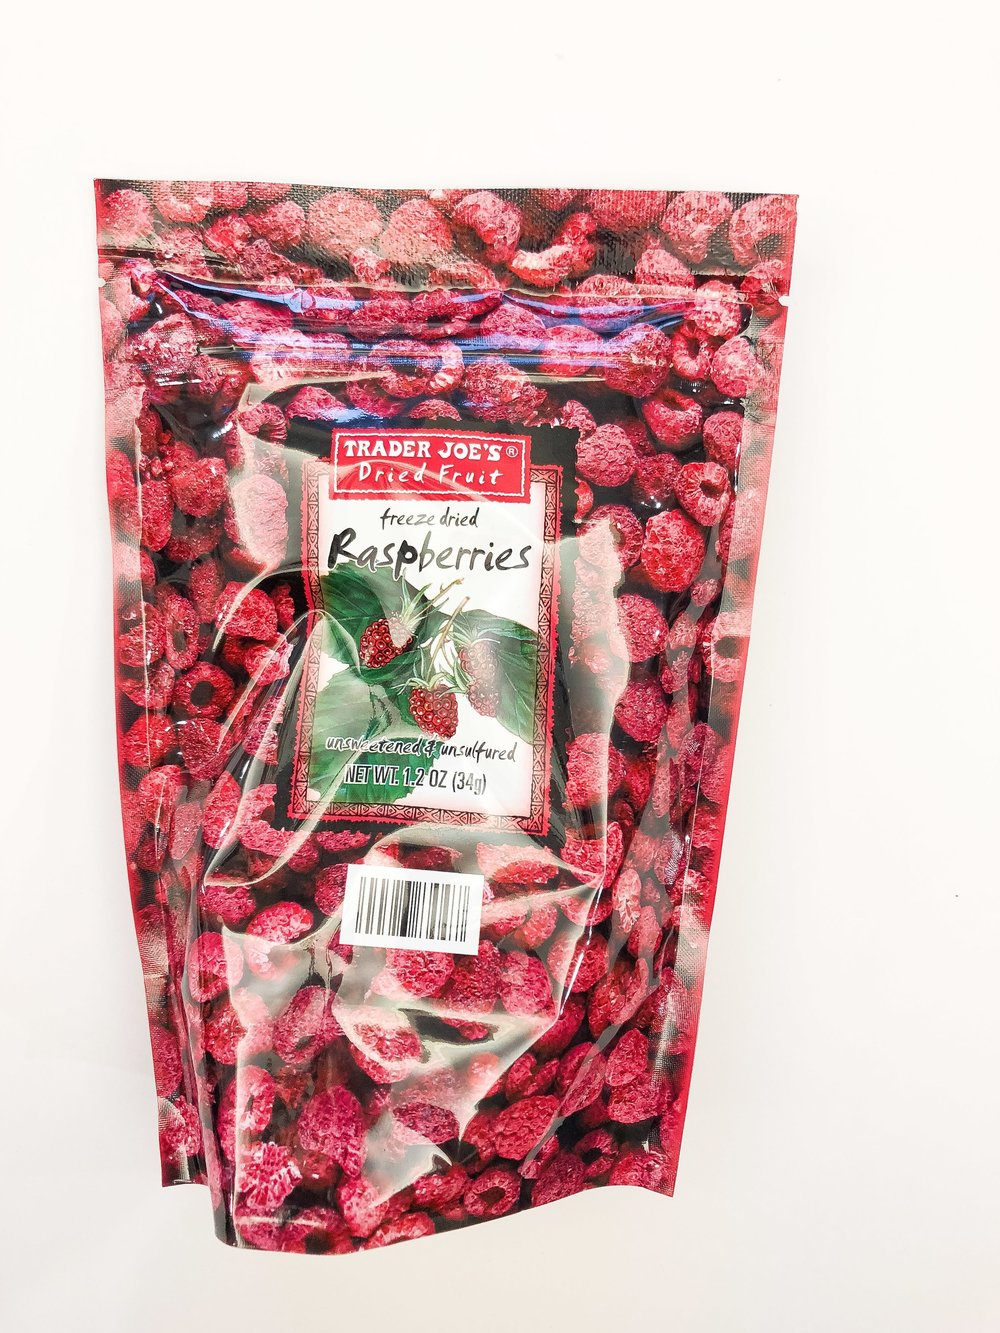 these are so great. I always buy multiple bags of these when I'm at TJs, or ask other people to buy them for me. Throw them in a trail mix, yogurt, or eat them as is. Baking with them is a dream because they perfectly capture the raspberry flavour without adding a bunch of water (think: pulse them into a powder and mix into a buttercream…yum).